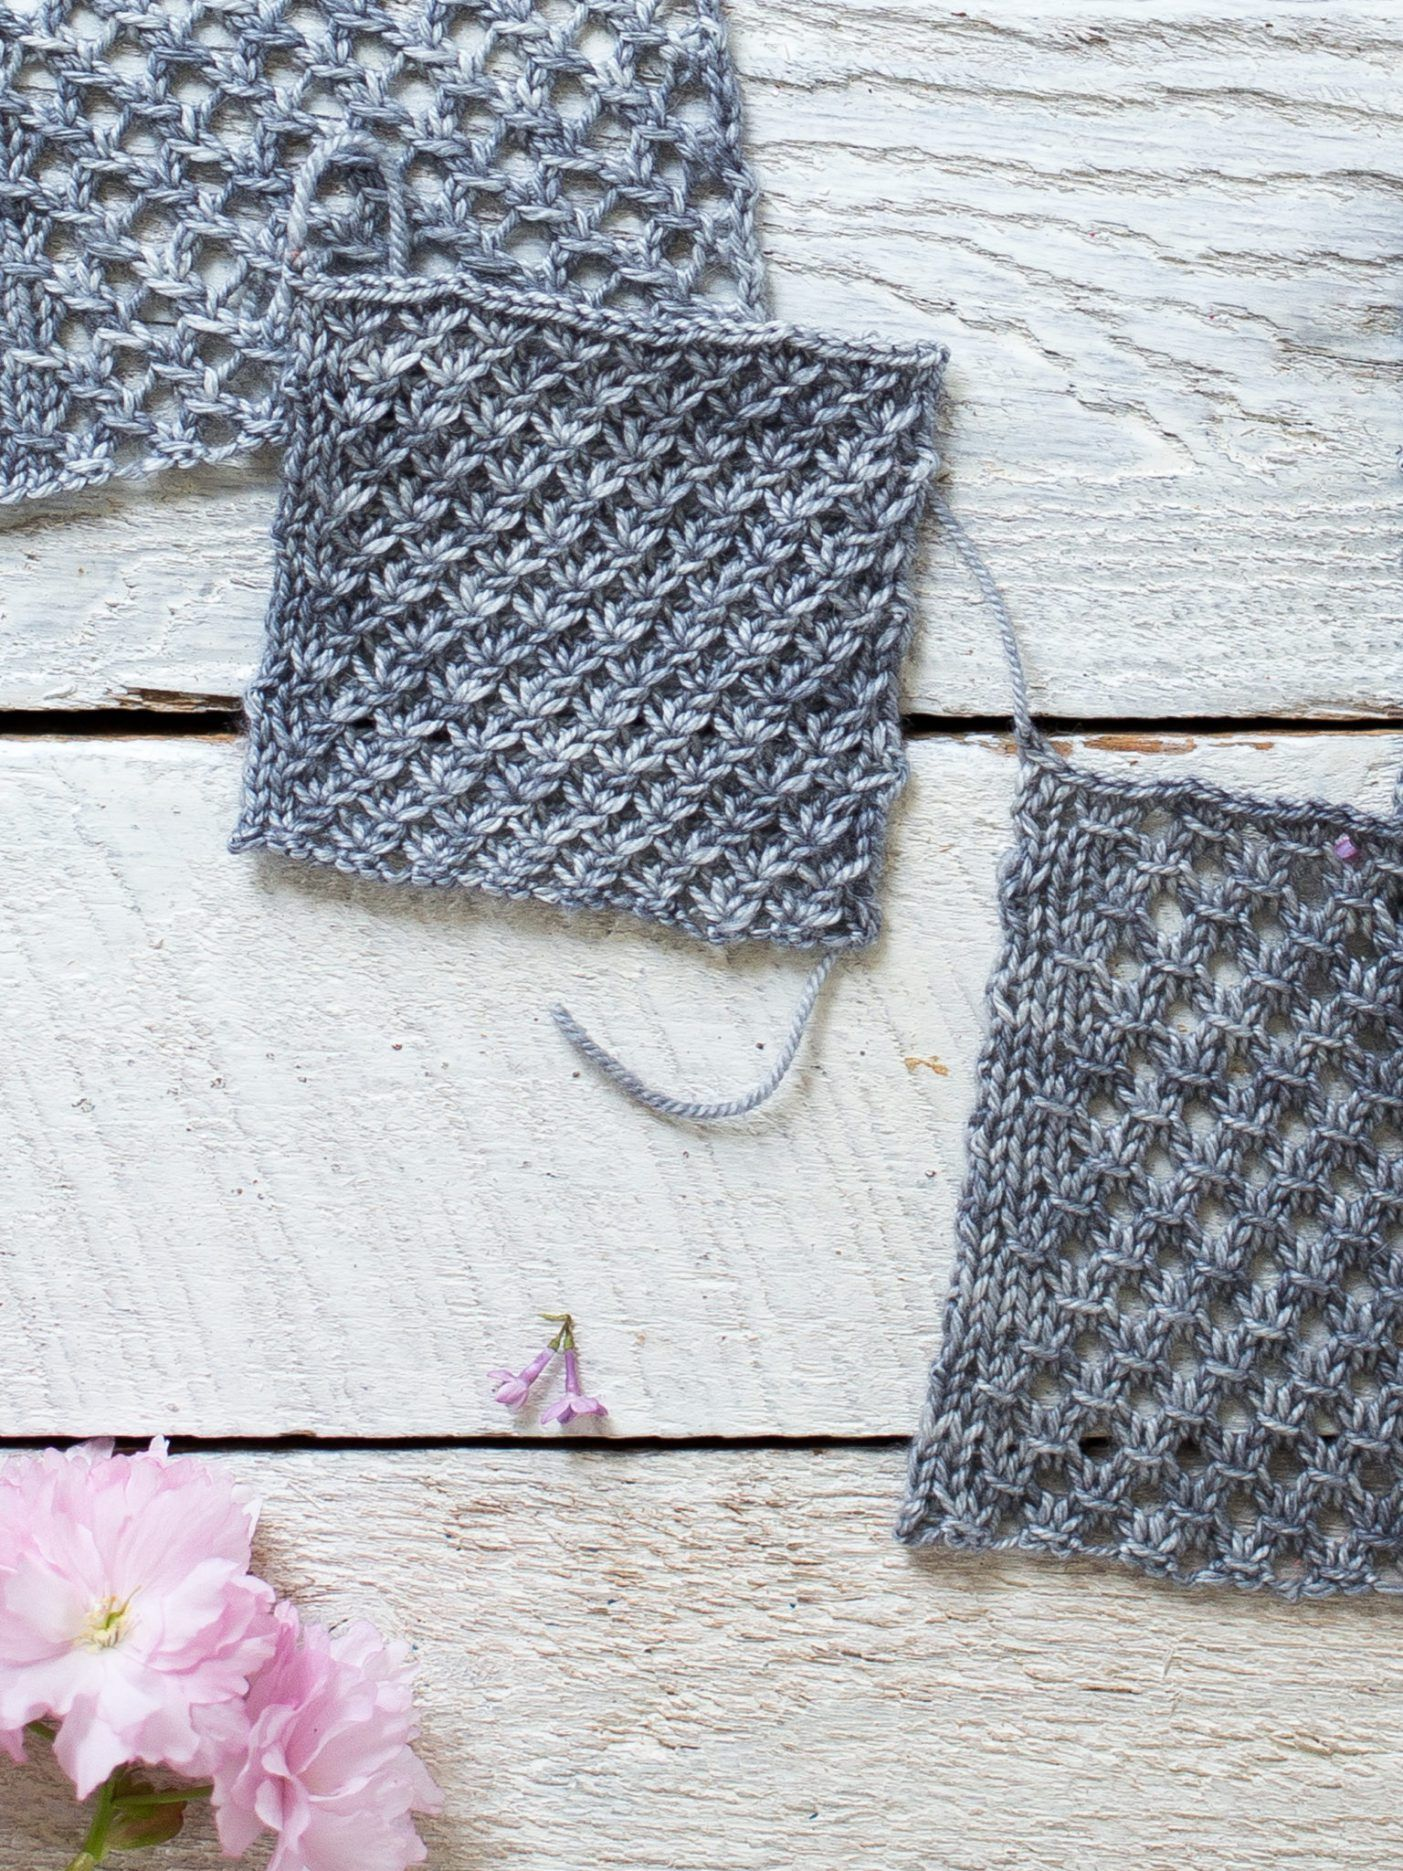 How To Make An Easy Lace Knit Shawl Pattern   knitting instructions ...